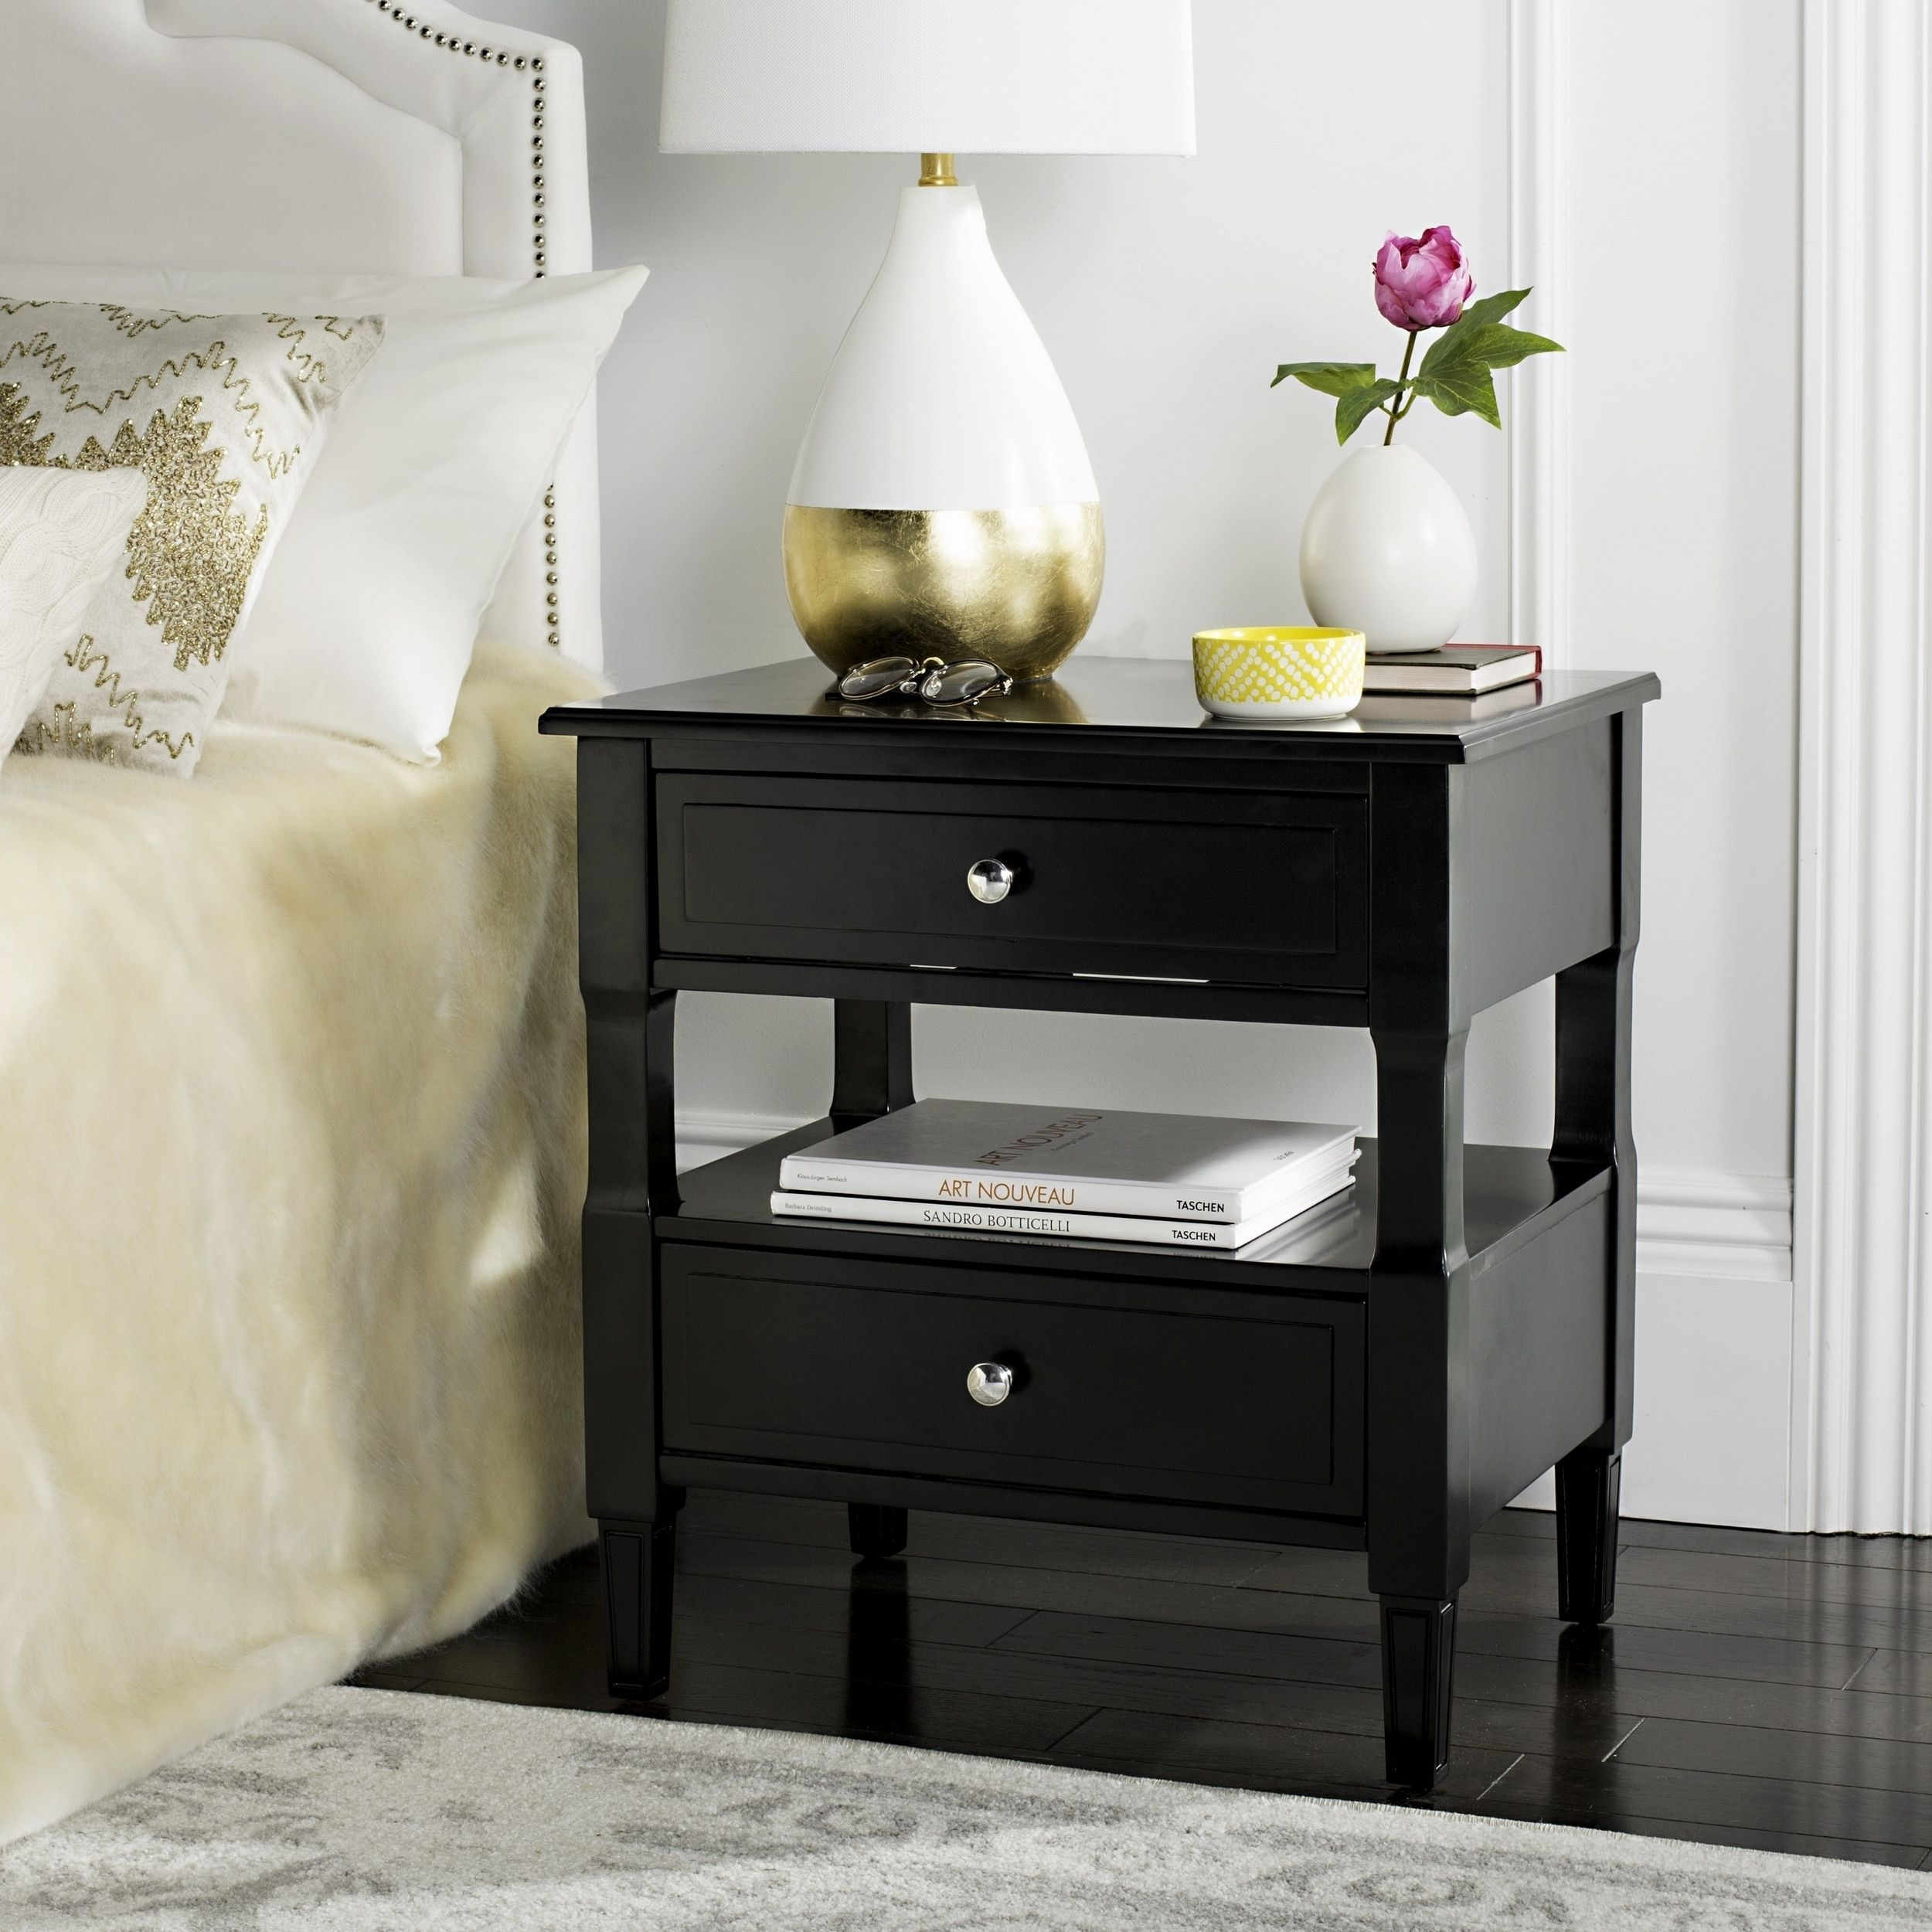 Safavieh Jenson Two Drawer Black / Black Night Stand (FOX6277B), Size  2 Drawer (Iron)